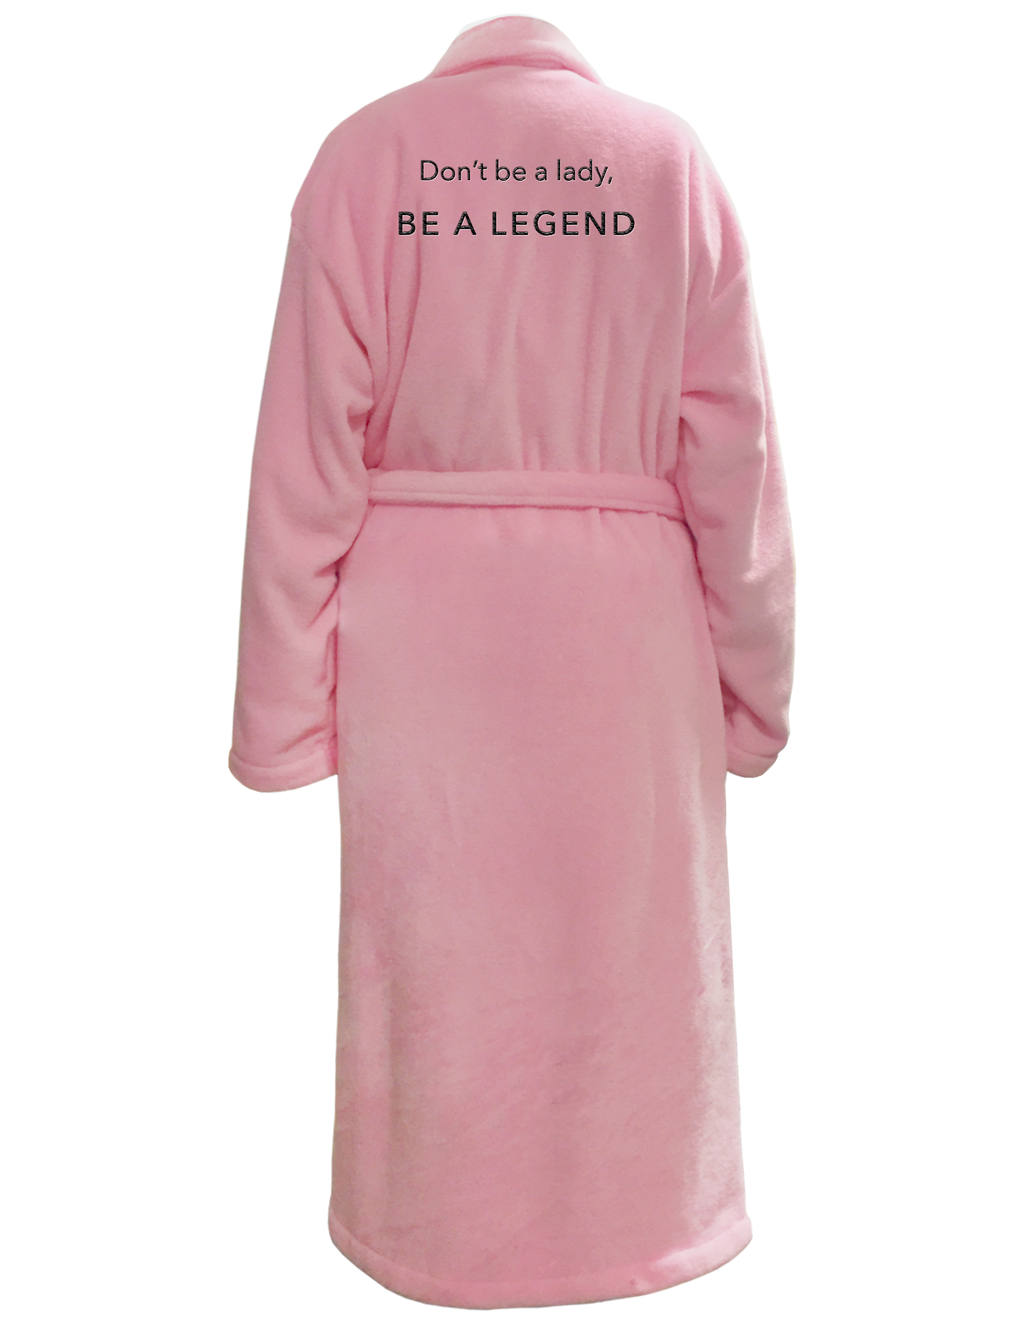 LUXE PLUSH ROBE- Be A Legend